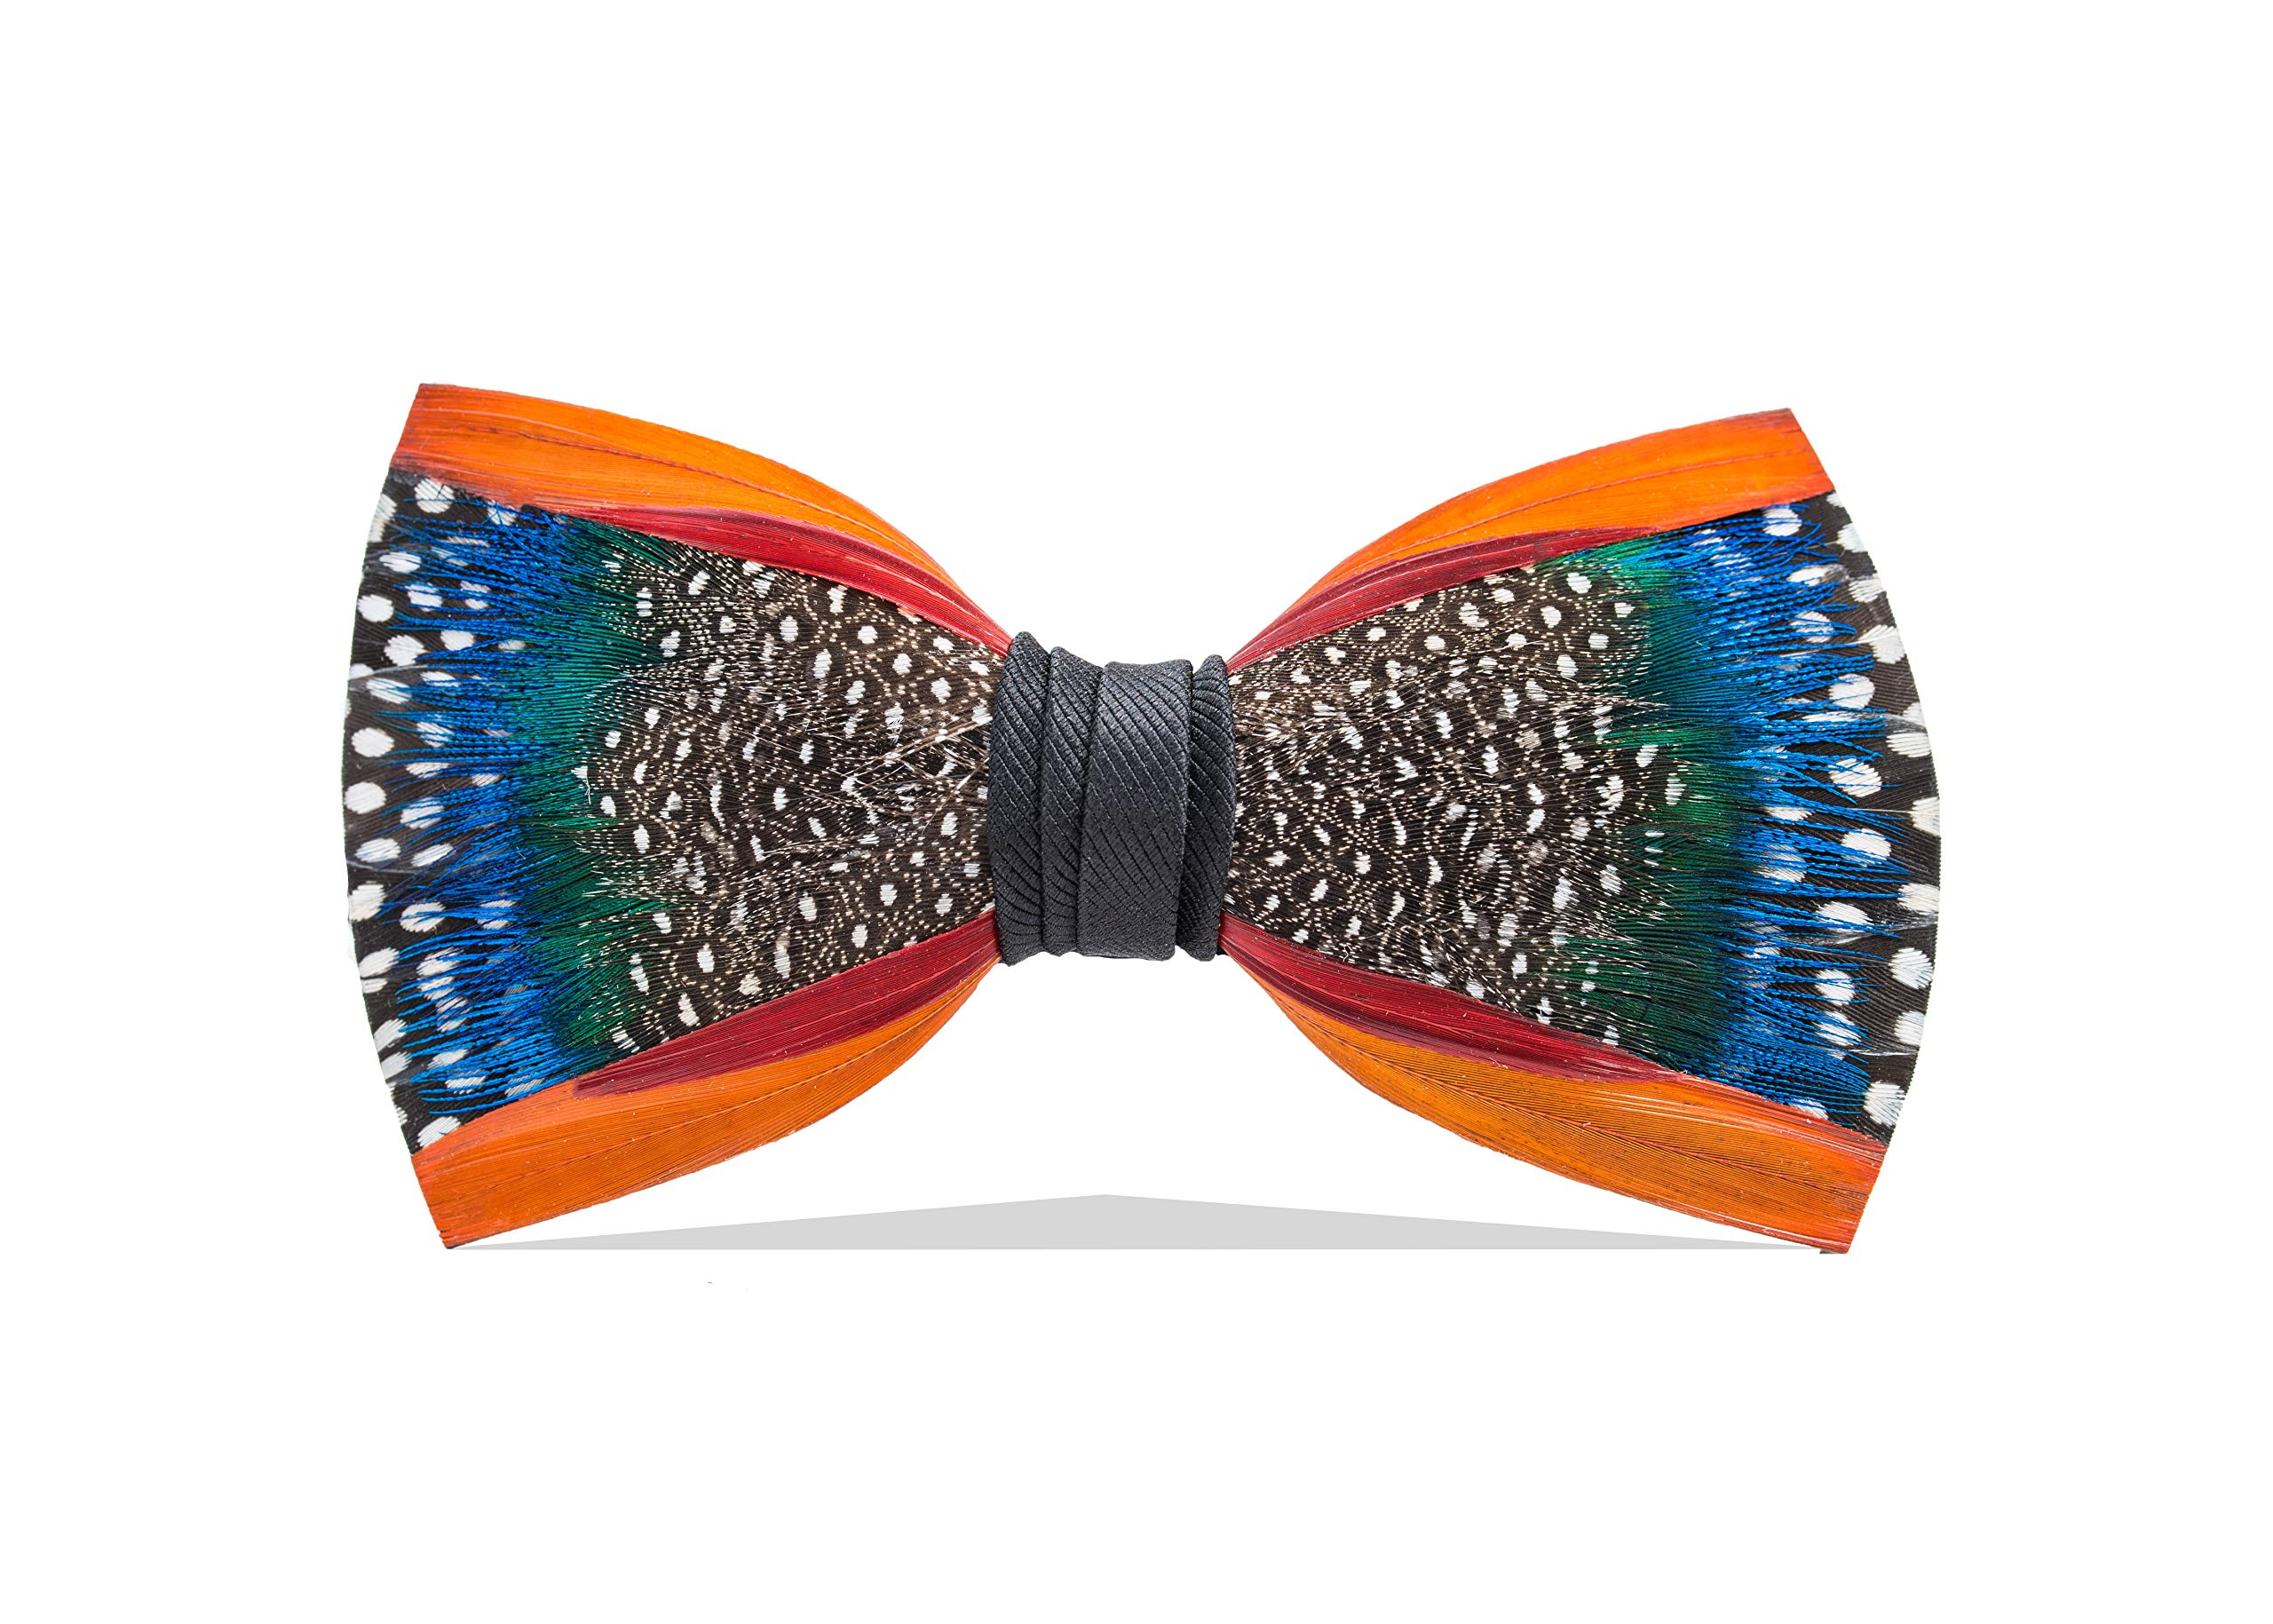 Brackish Men's Mill Pond Handcrafted Pheasant/Guinea/Peacock Feather Bow Tie (274-BRK)